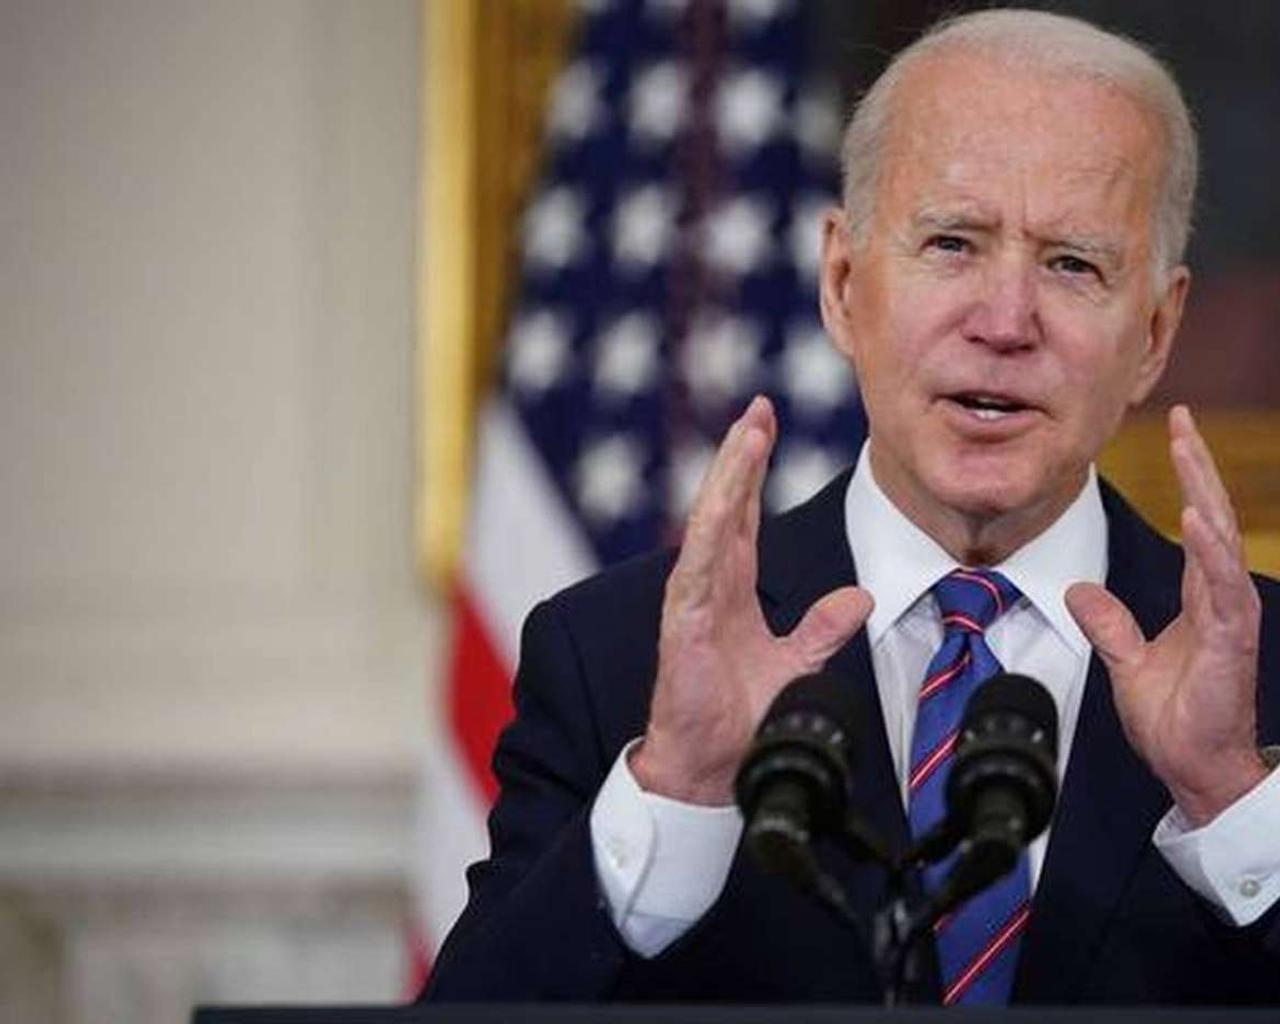 Biden is submitting a deadline for COVID vaccination to April 19